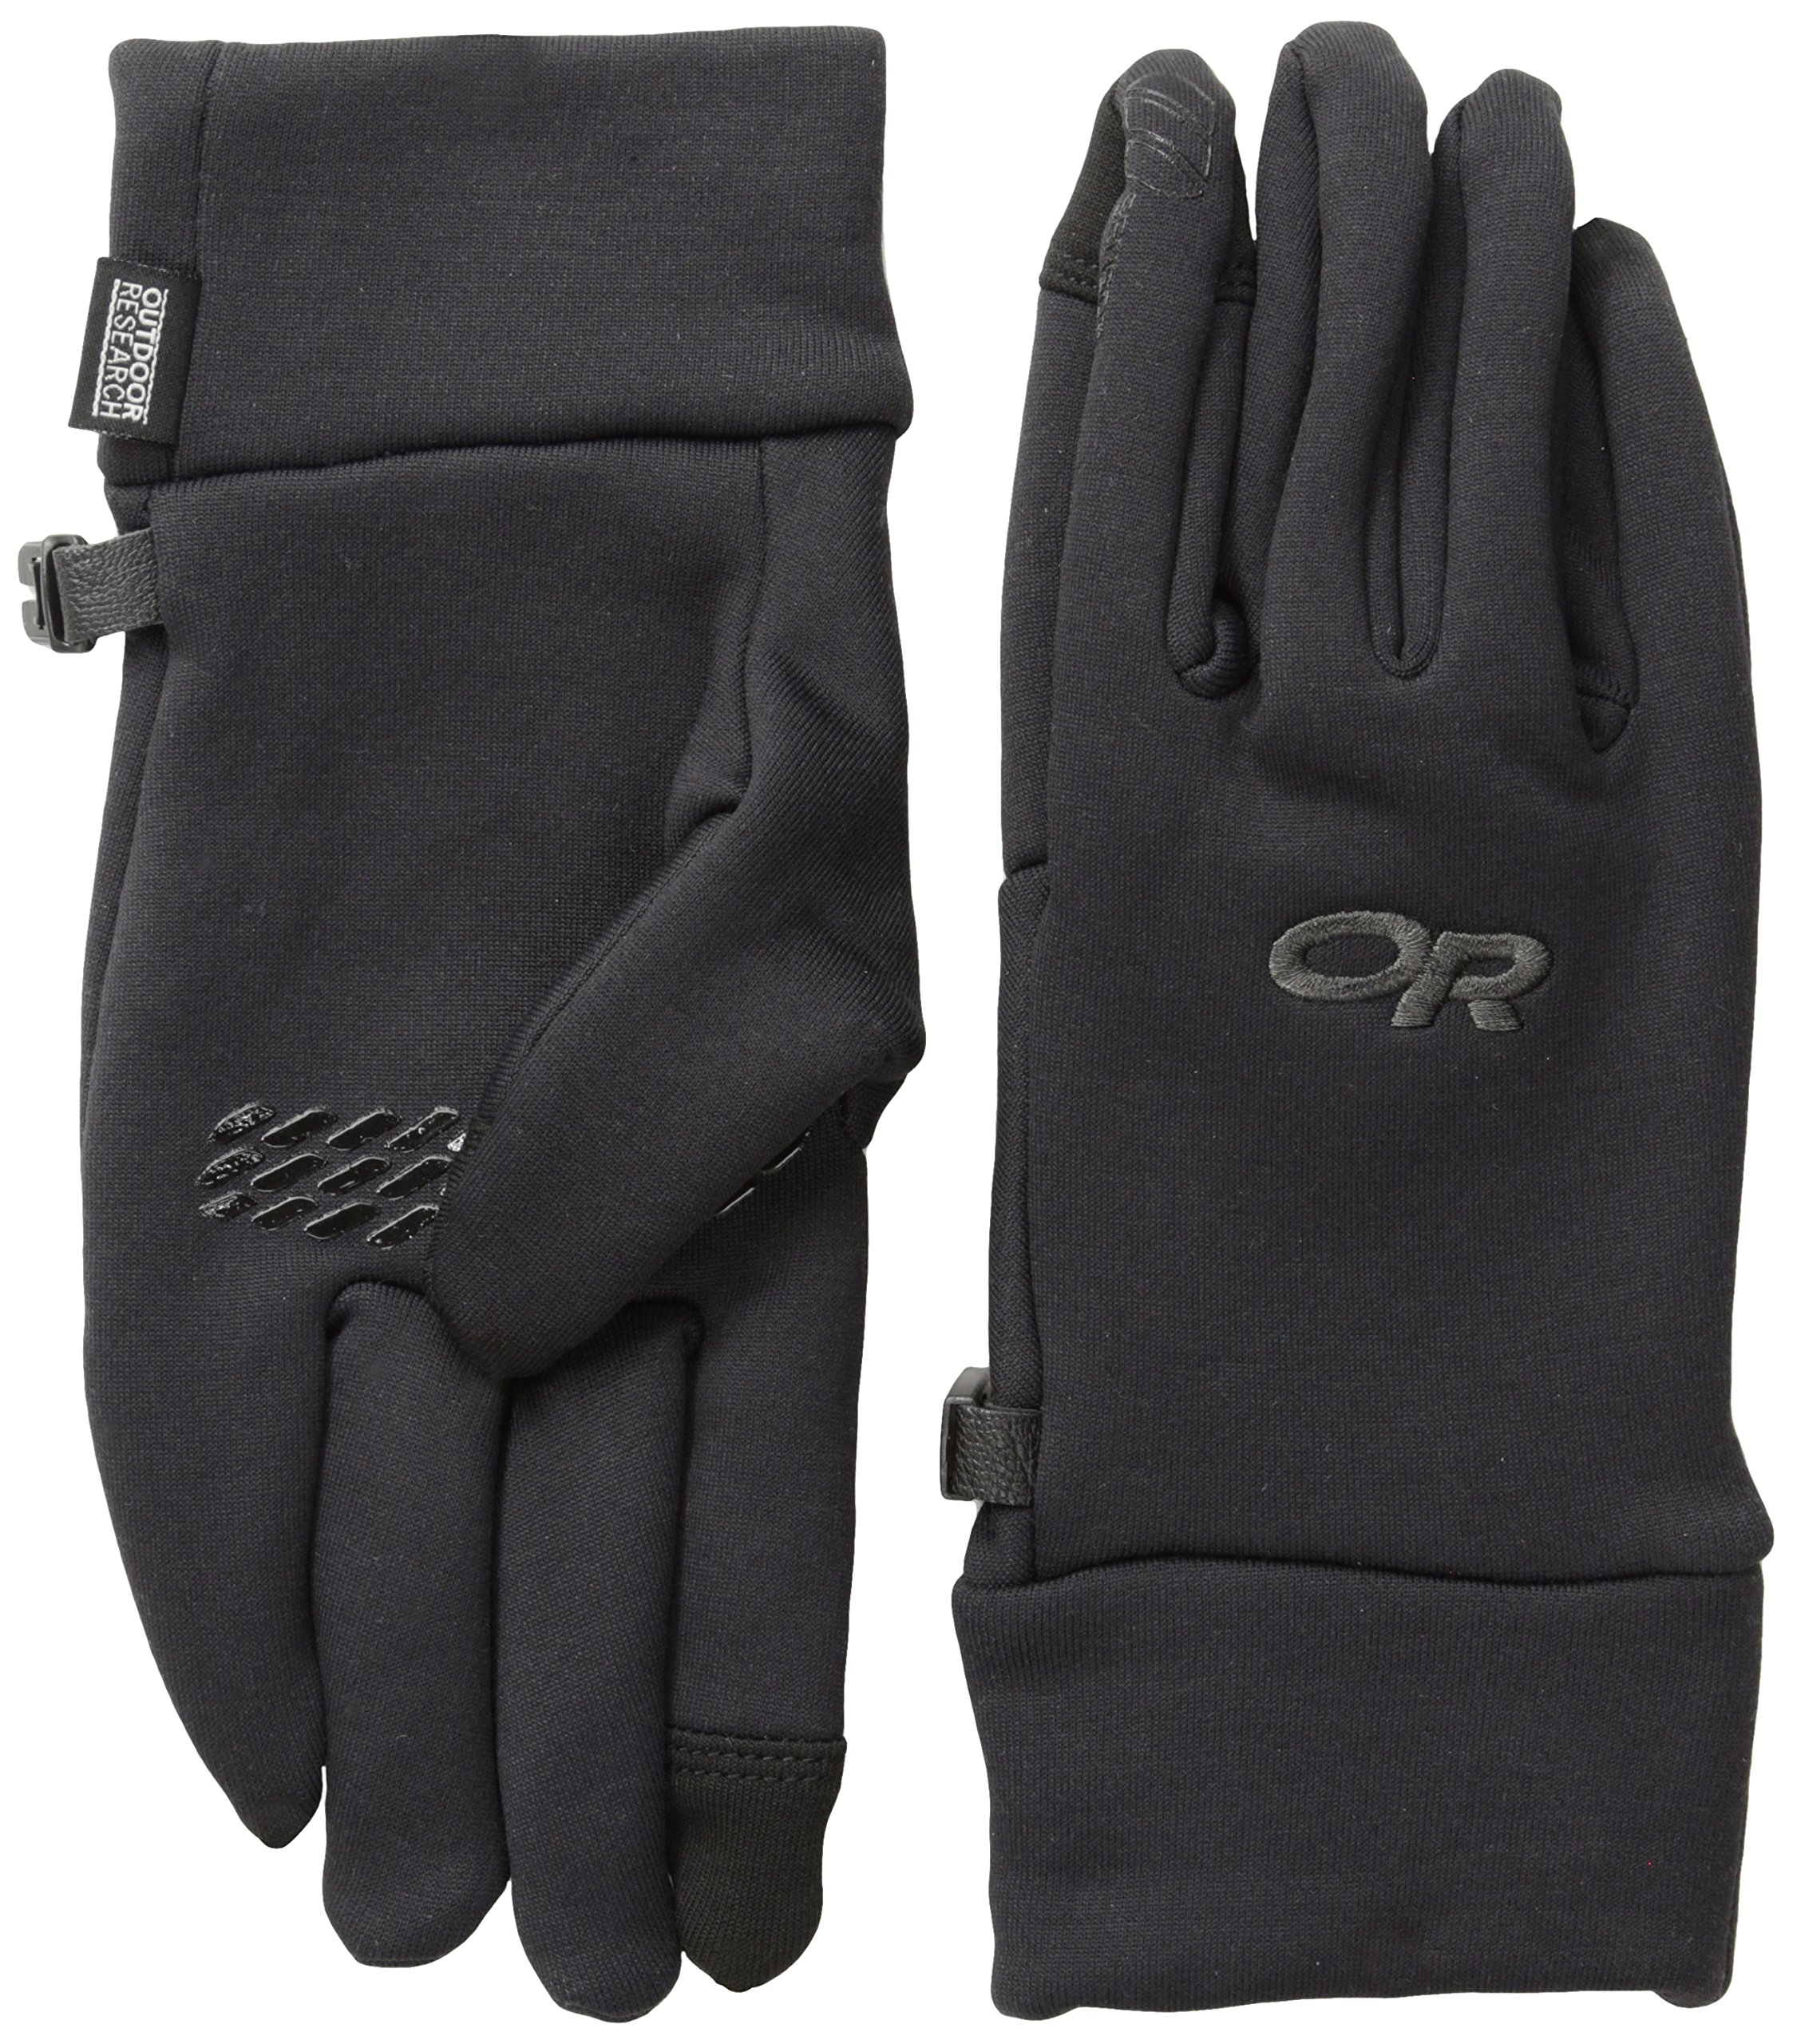 Outdoor Research Men's PL150 Sensor Gloves, Black, X-Large by Outdoor Research